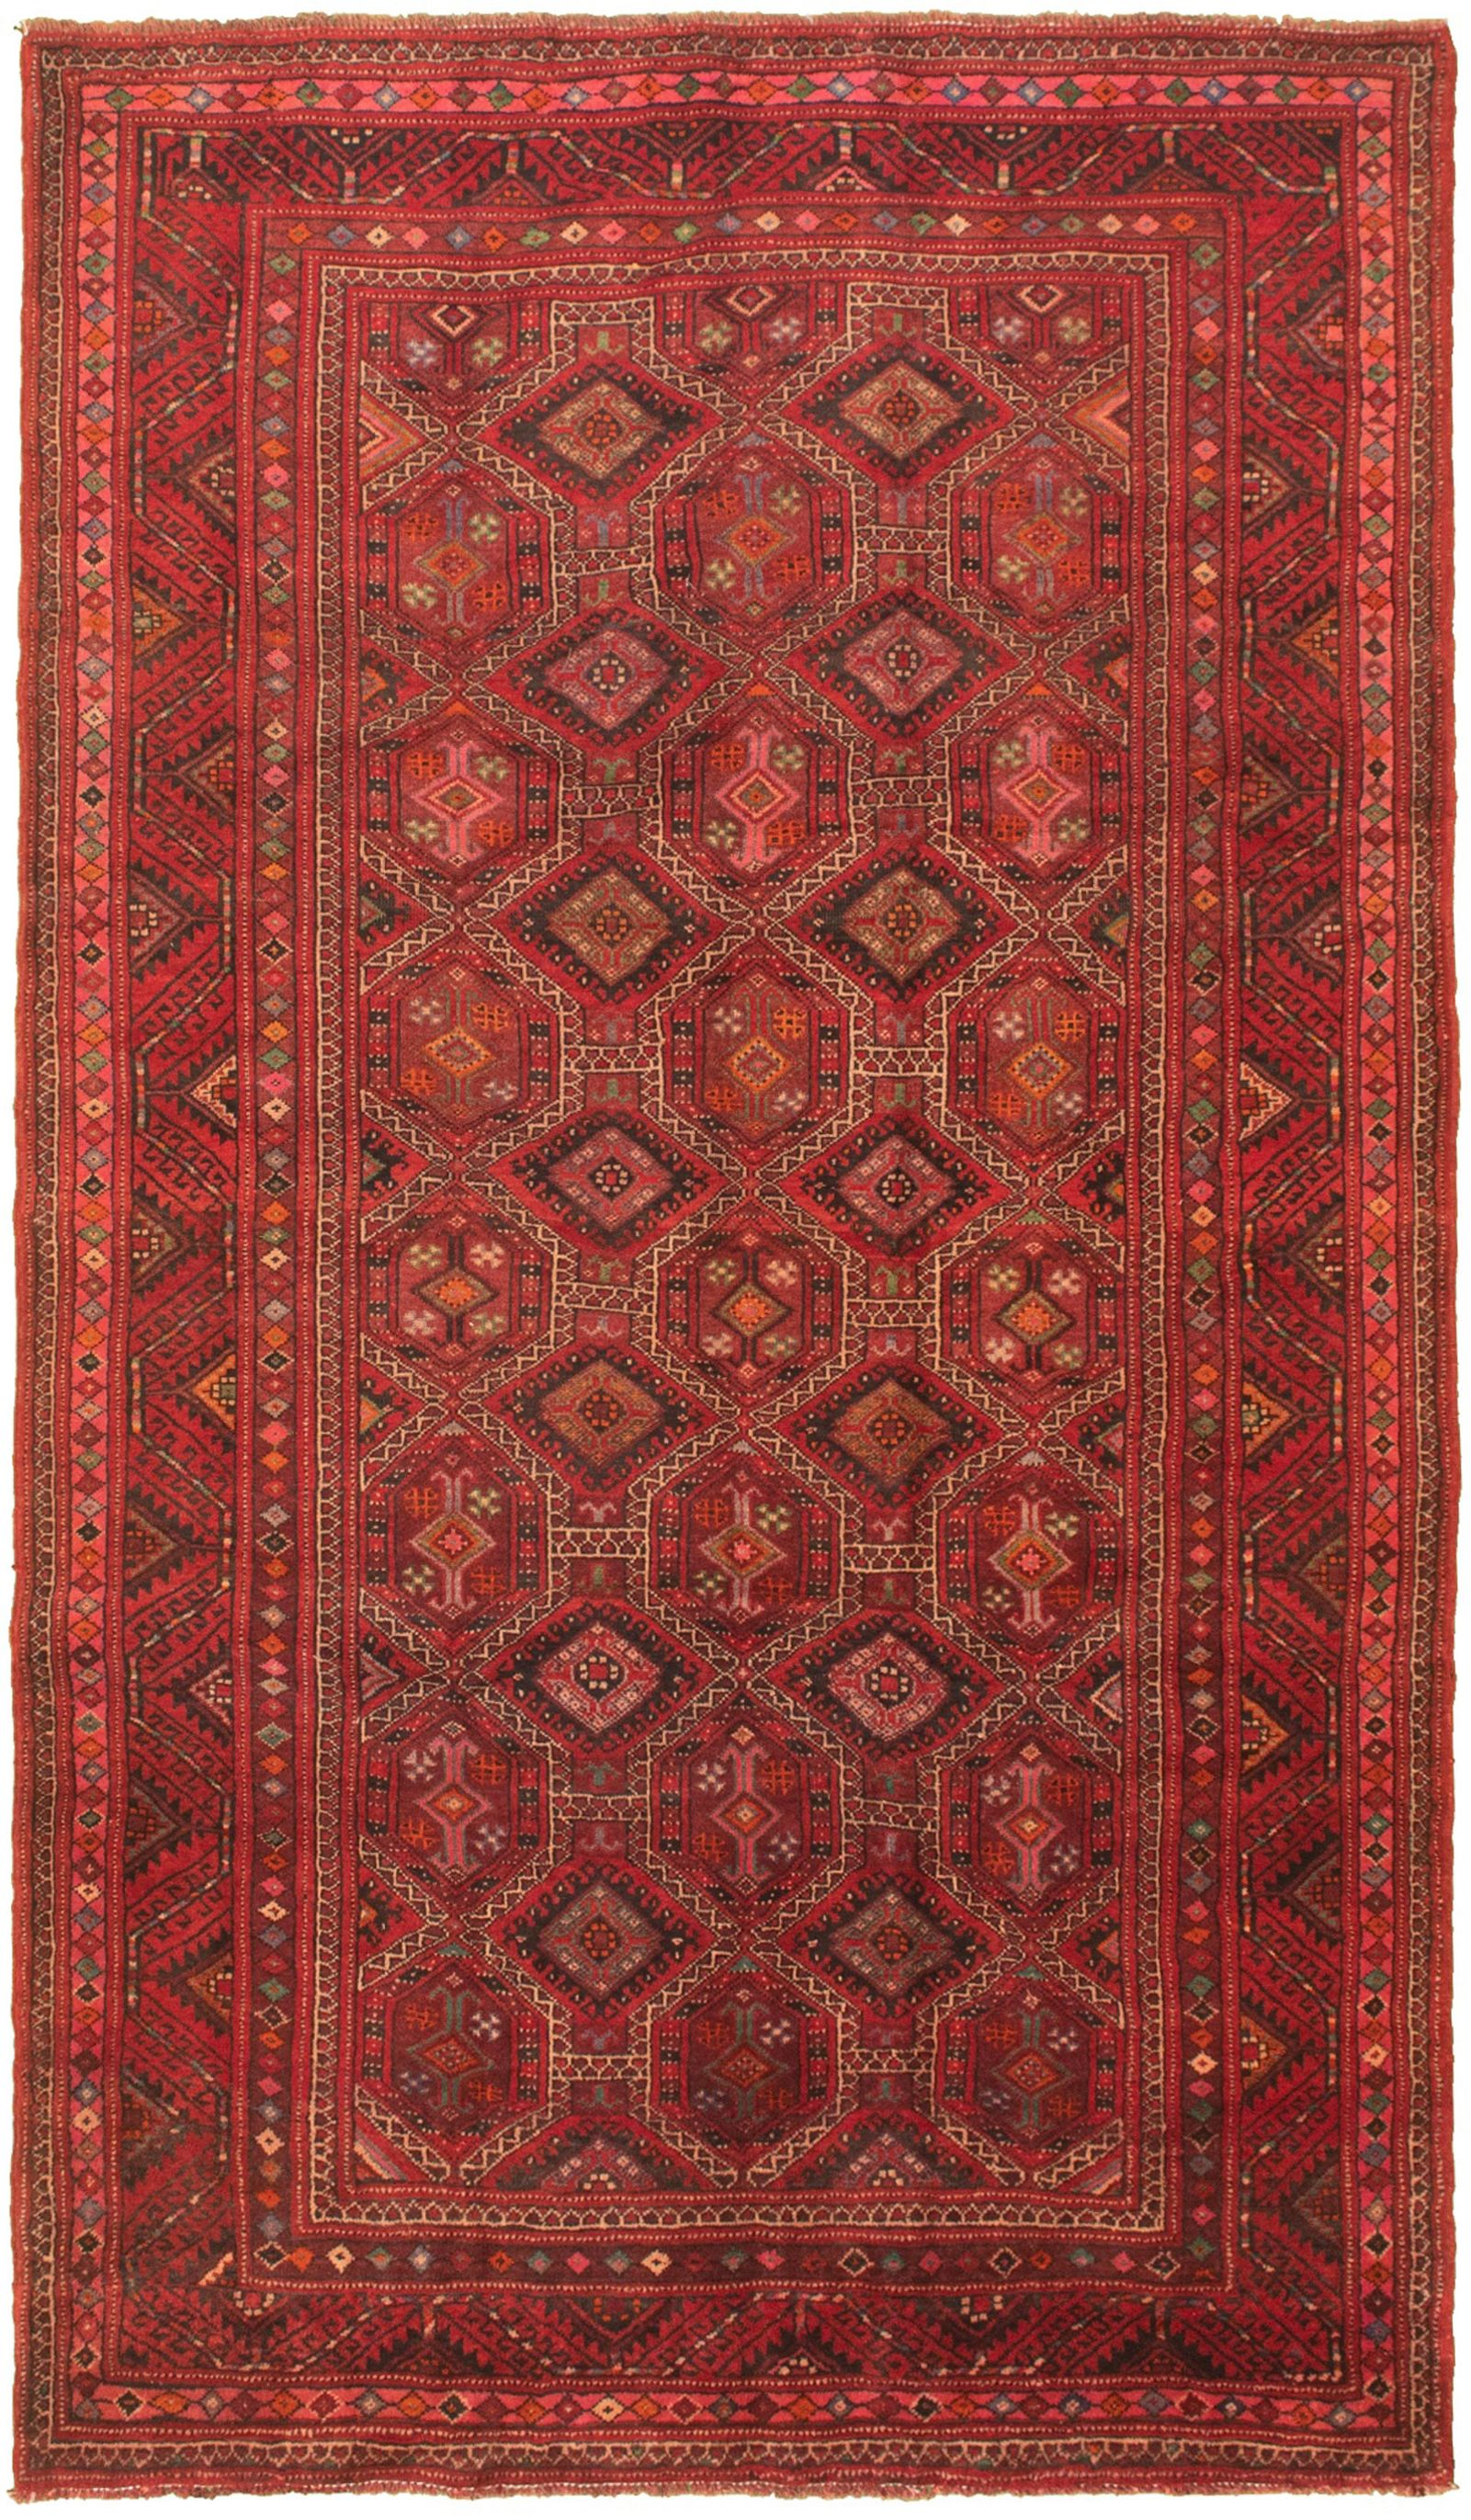 """Hand-knotted Authentic Turkish Red Wool Rug 5'4"""" x 9'6"""" Size: 5'4"""" x 9'6"""""""